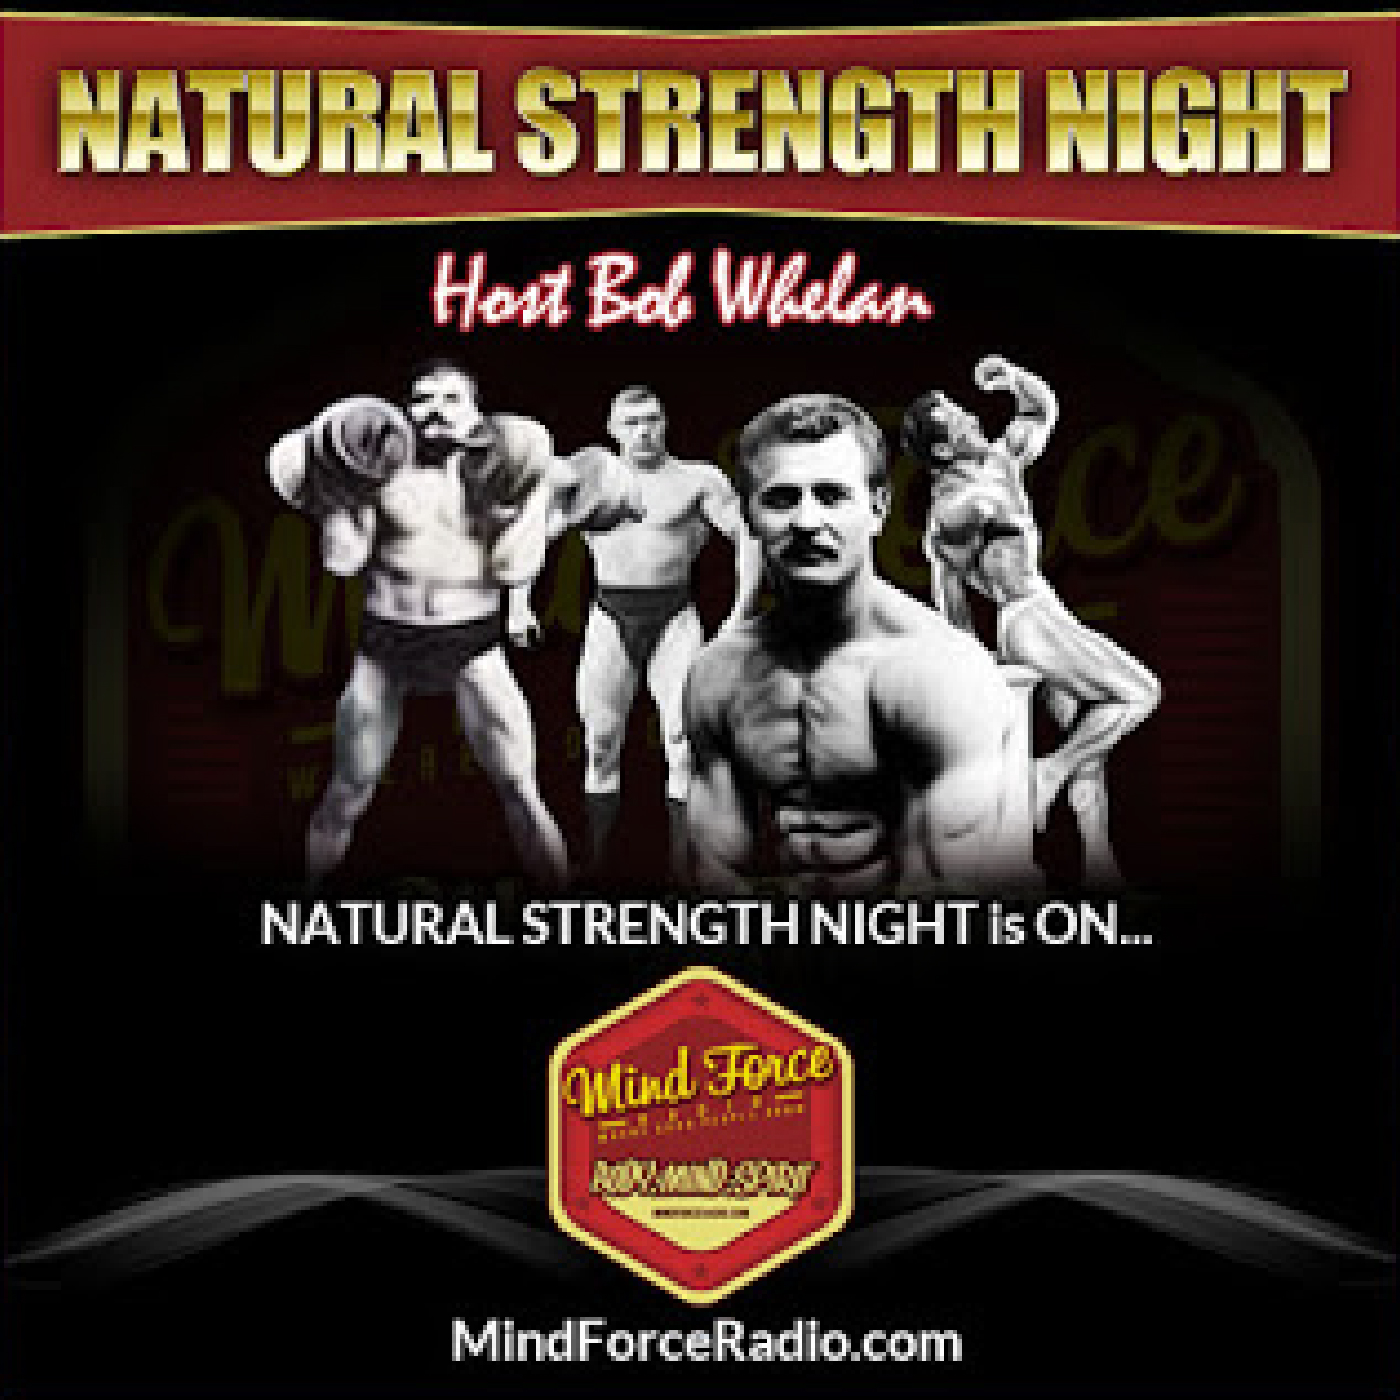 oldtime strongman podcasts strength conditioning coach vintage  old school weight training mental aspects big arms powerlifting christian iron dave yarnell interview bob whelan natural strength night podcast